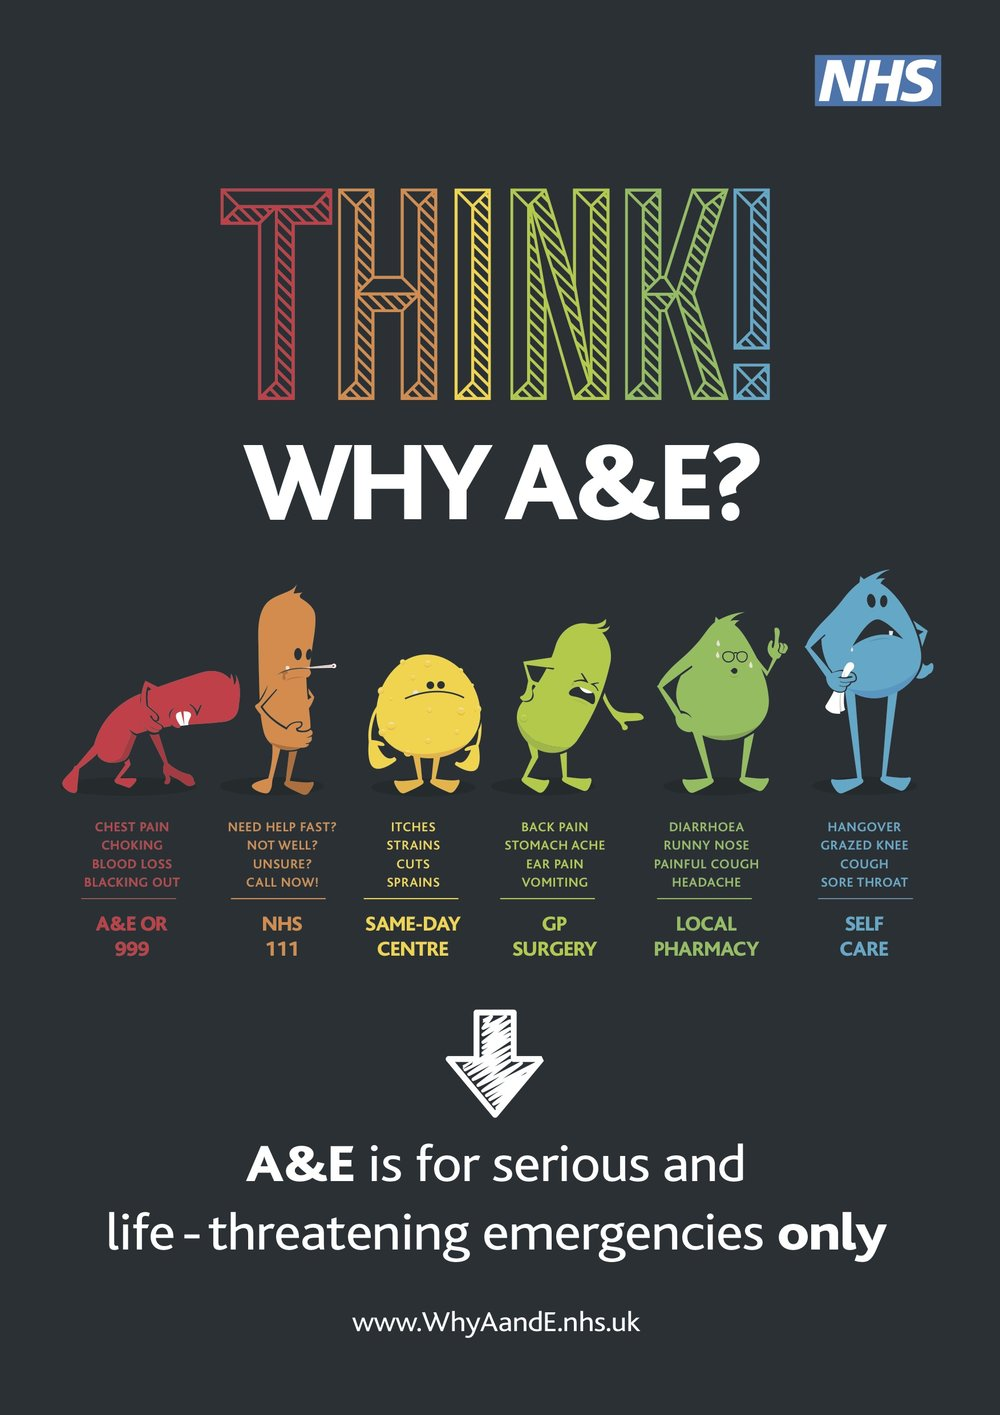 Image credit: NHS via www. whyaande.nhs.uk  As always feel free to contact the Warden's Team at International Hall if you have any questions regarding this or other issues you may be facing. We are here as useful resources for you.